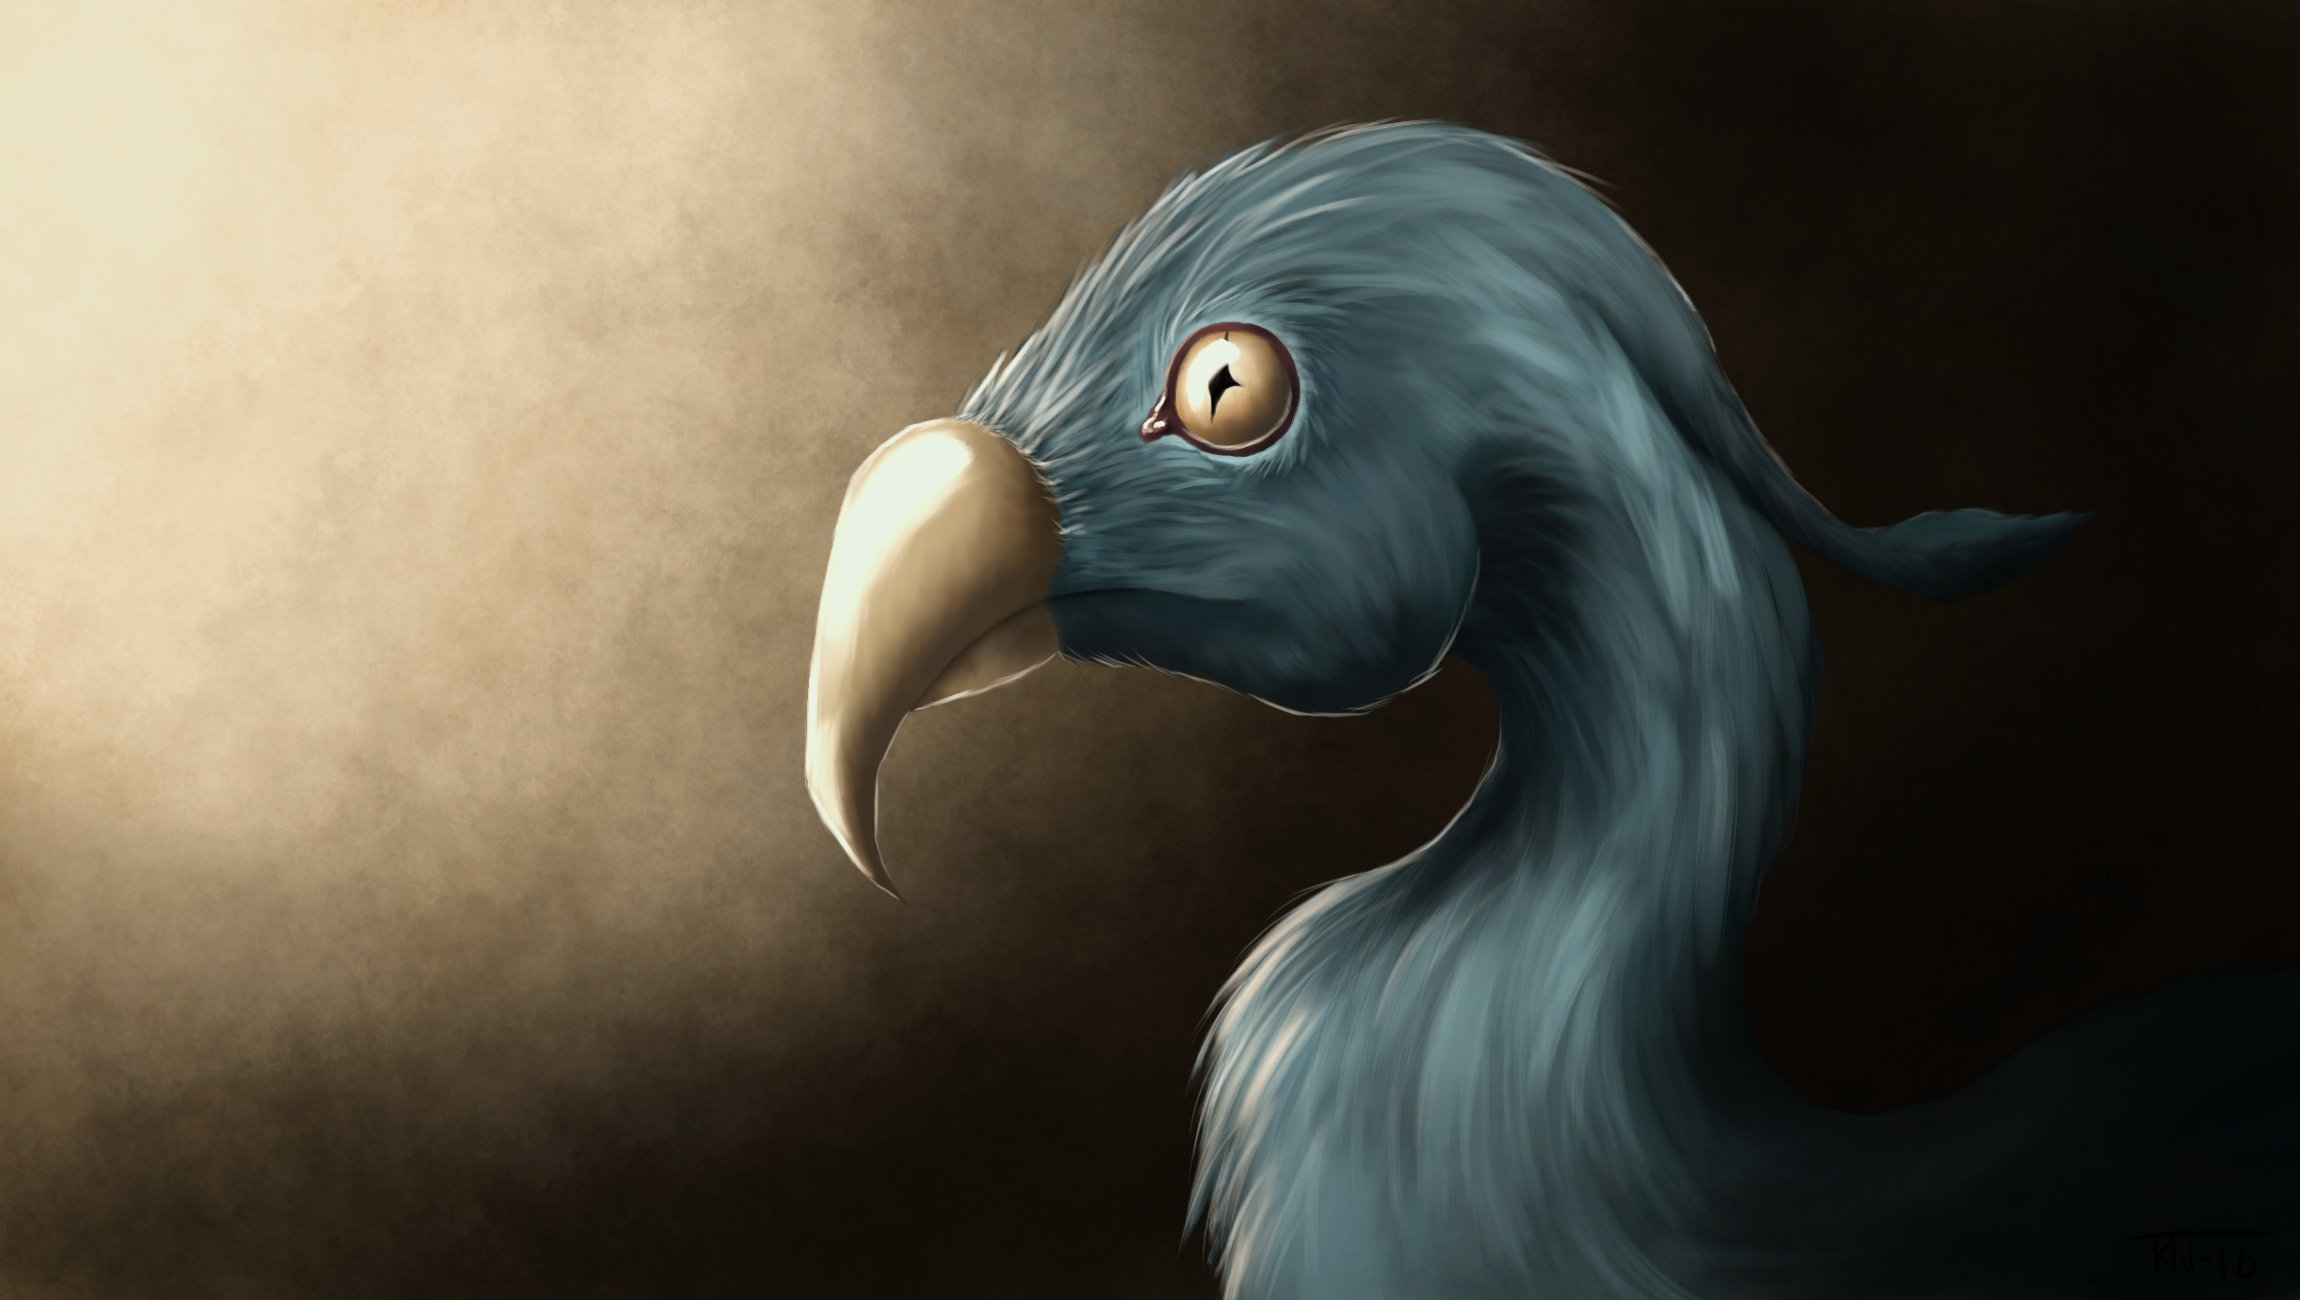 Hippogriff by trinemusen1